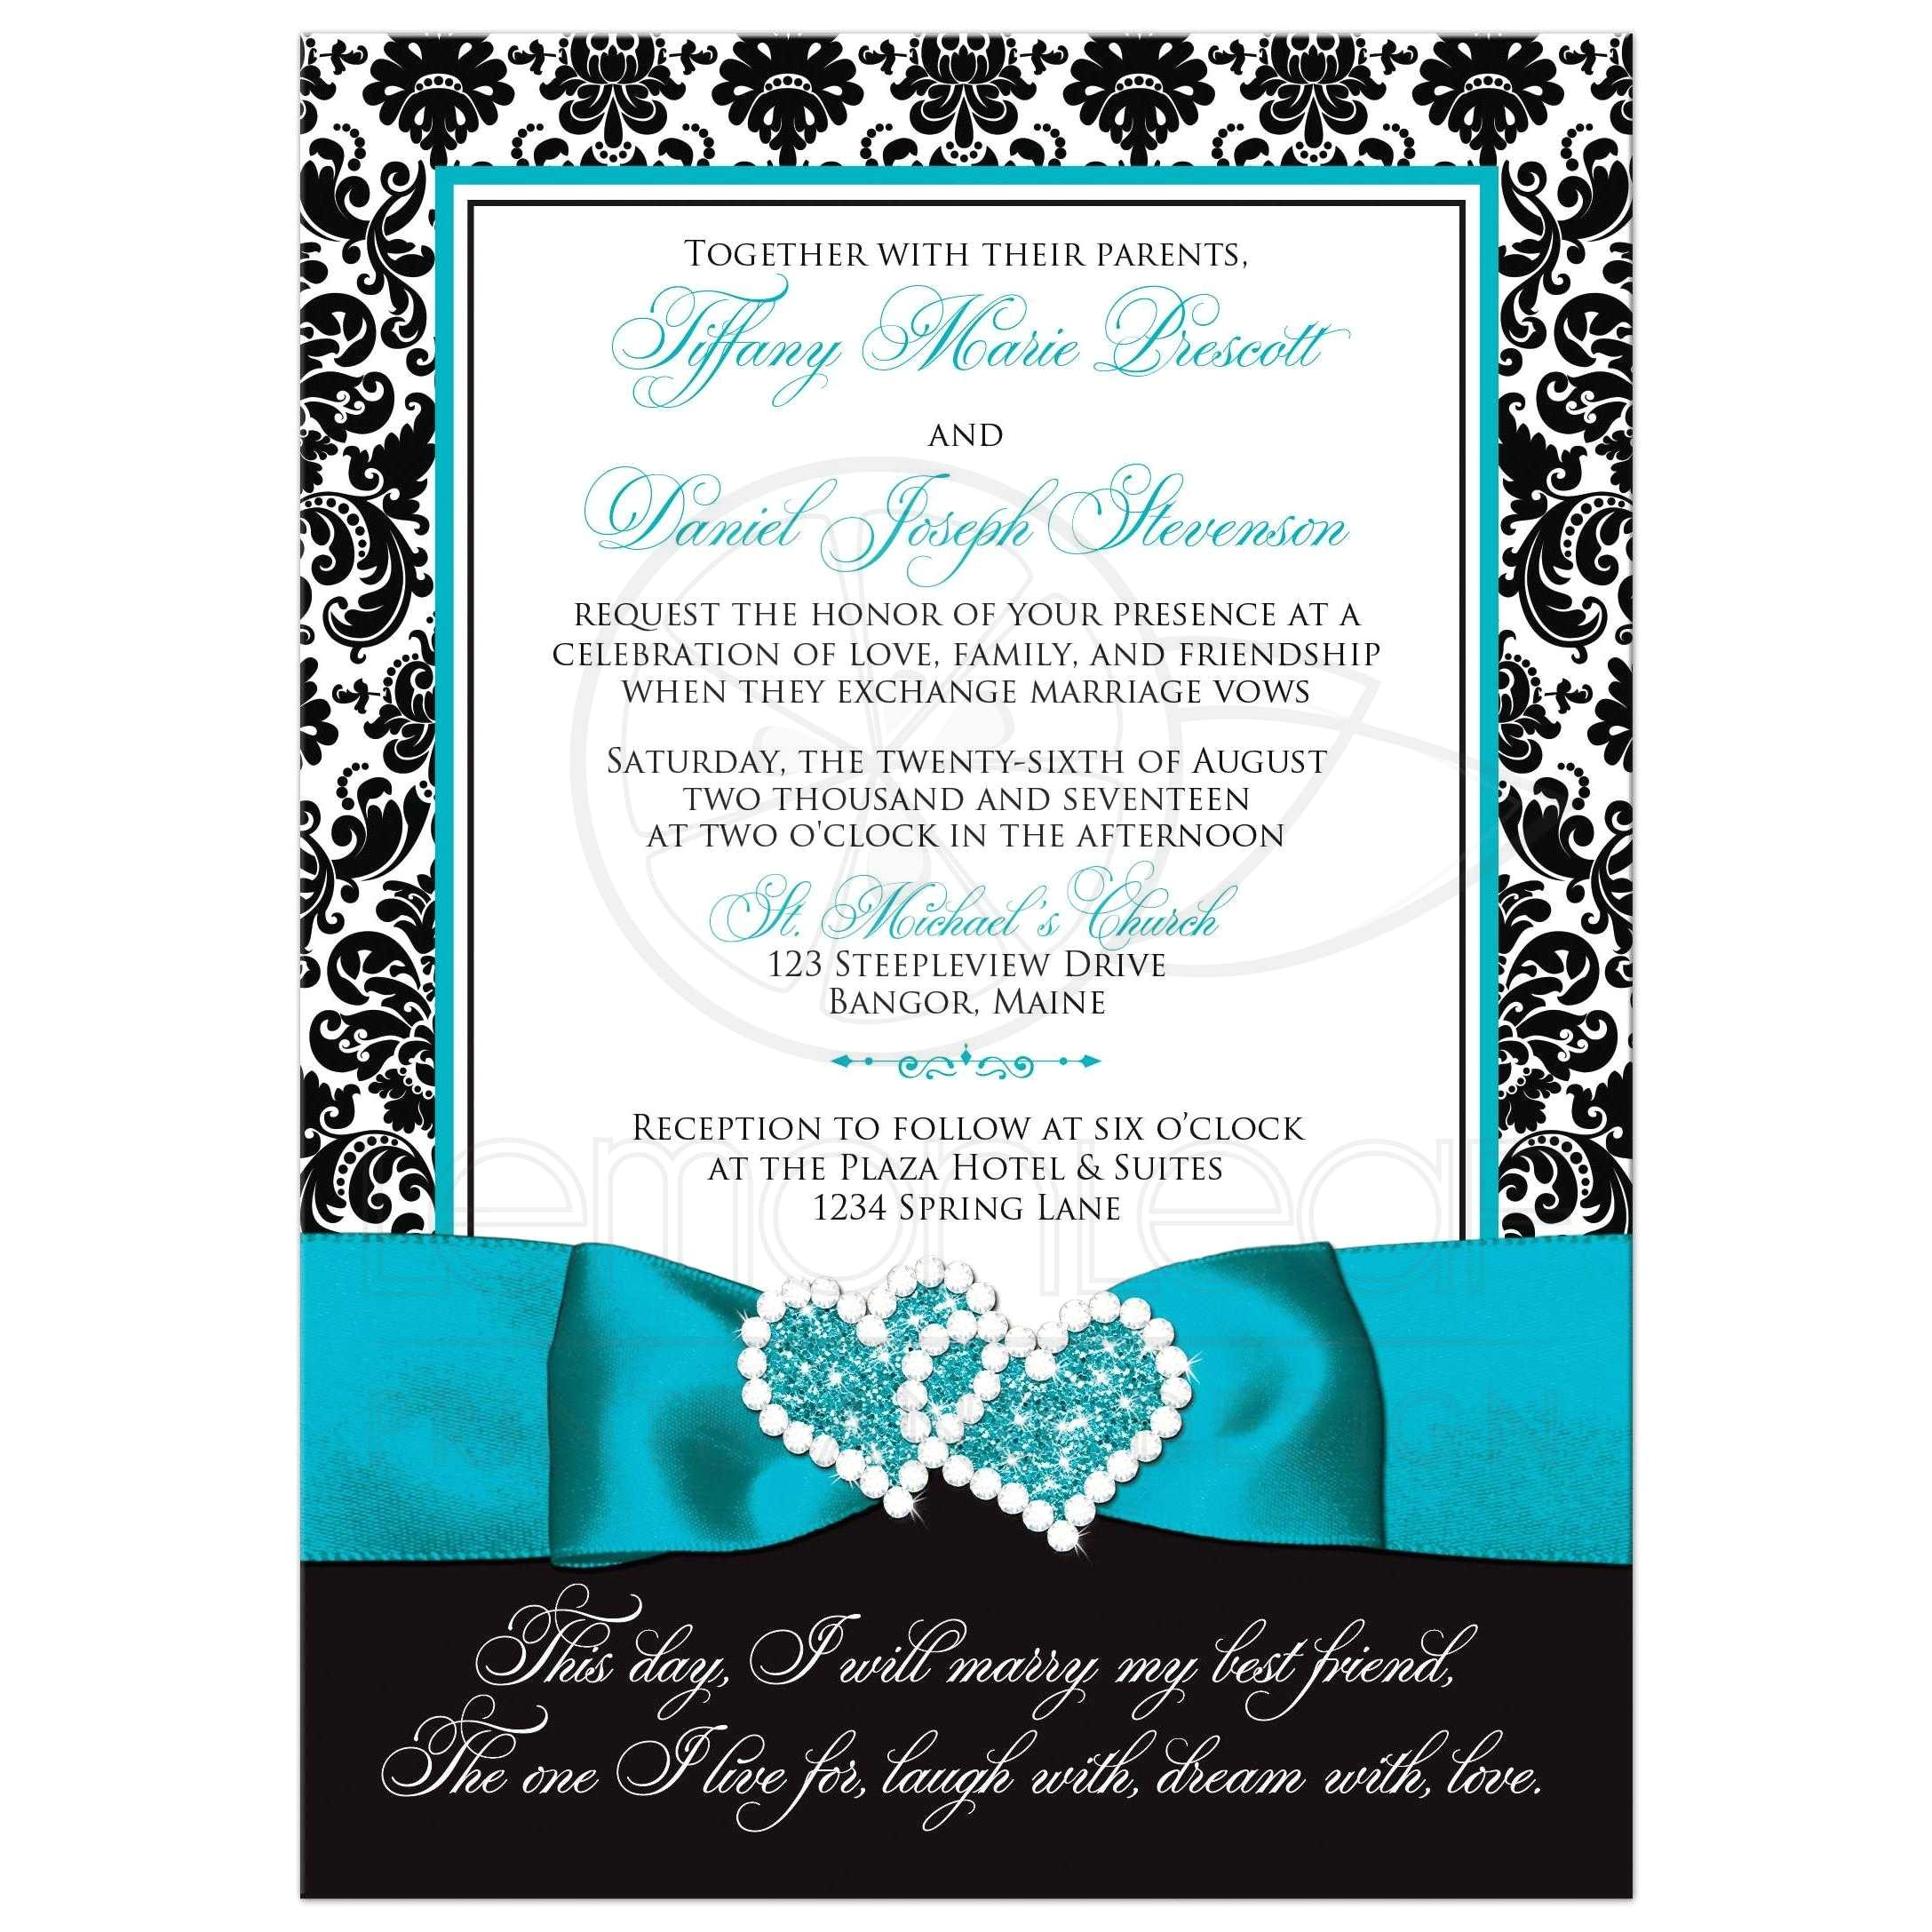 wedding invitation photo optional black and white damask printed turquoise ribbon and double hearts